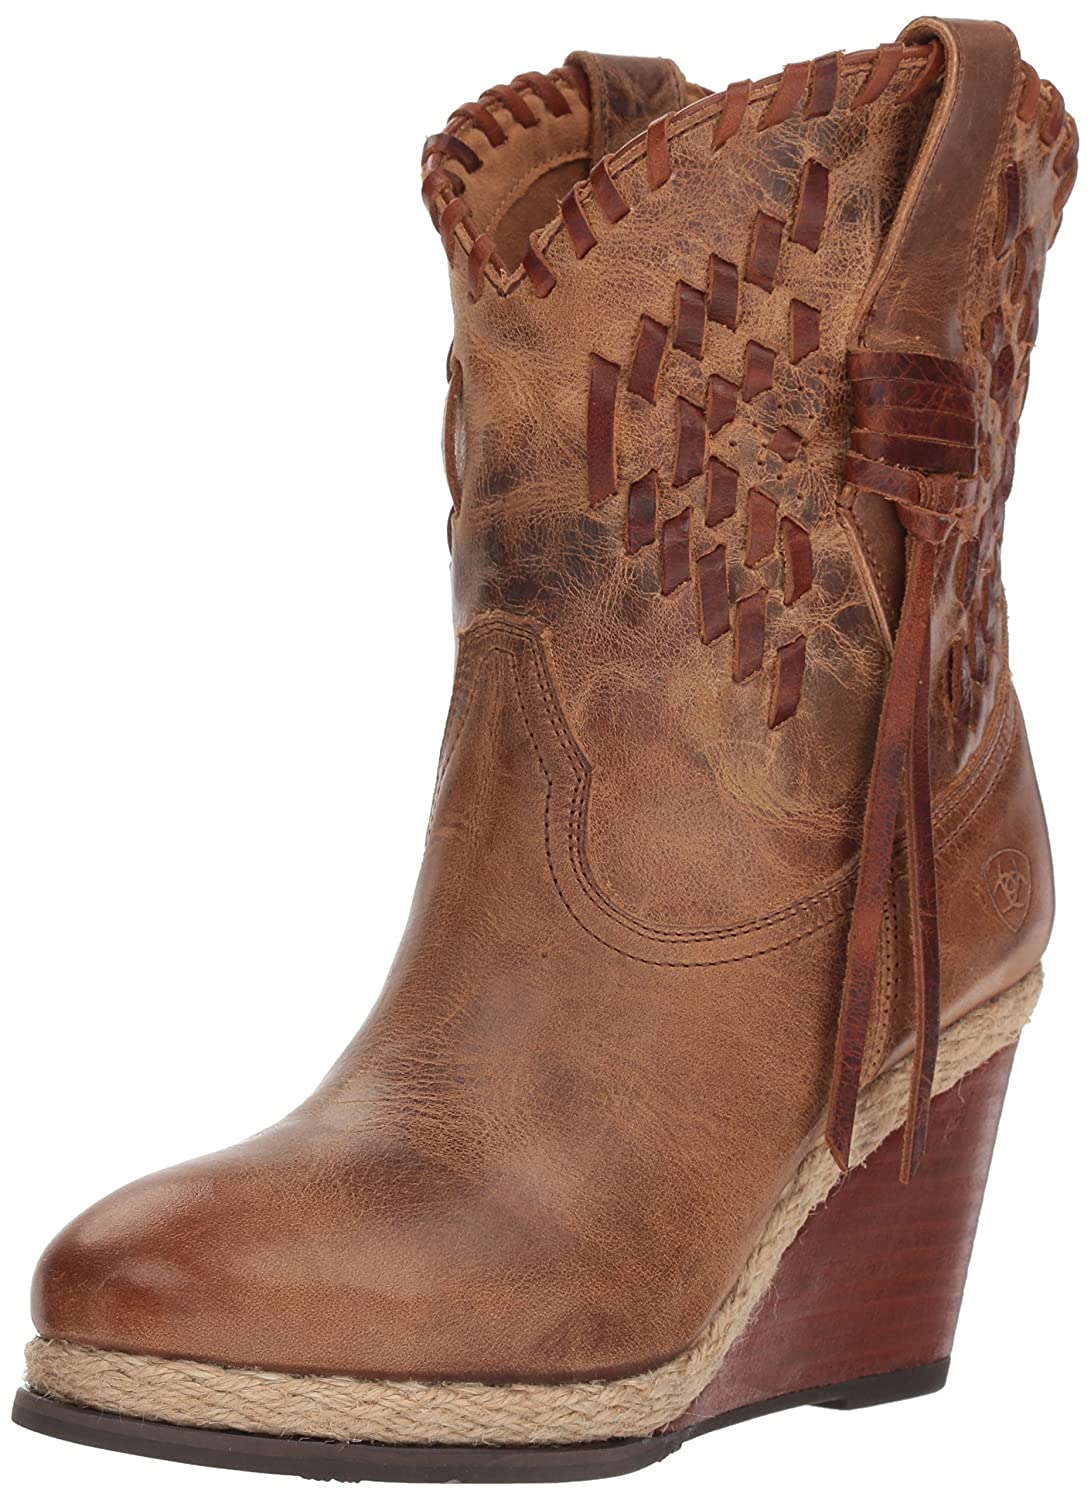 [Ariat] レディース 10023207 10 B(M) US Crackled Tan B076MGW4TS